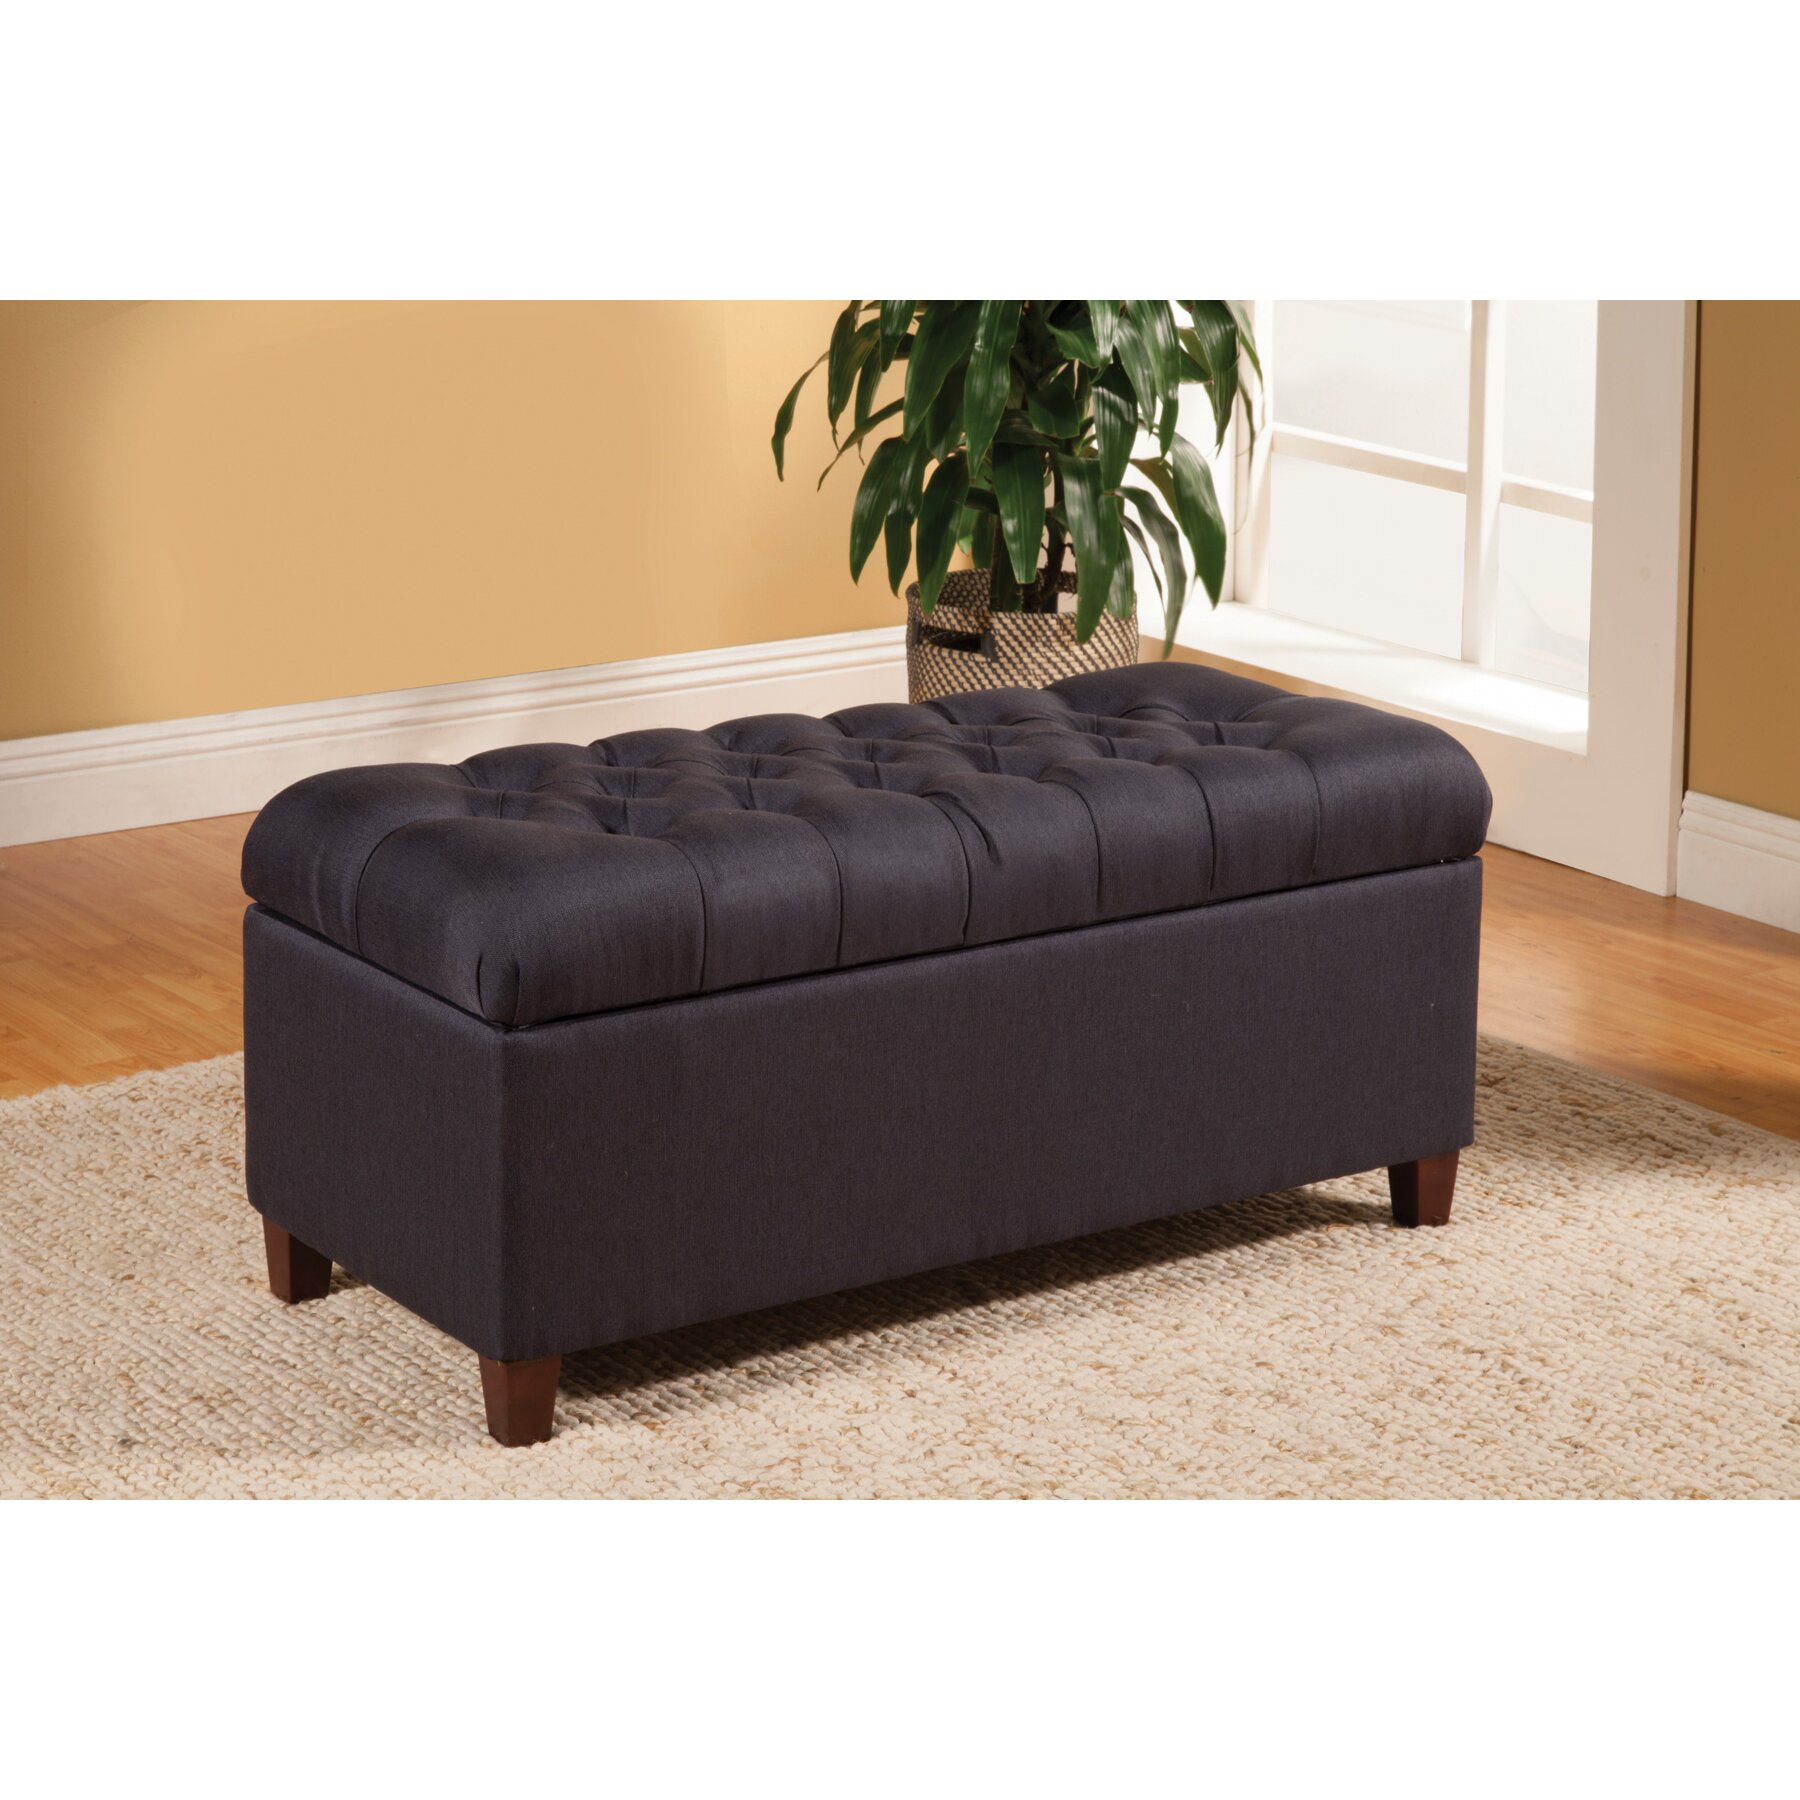 alcott hill henderson upholstered storage bedroom bench 14173 | henderson upholstered storage bedroom bench alct2924